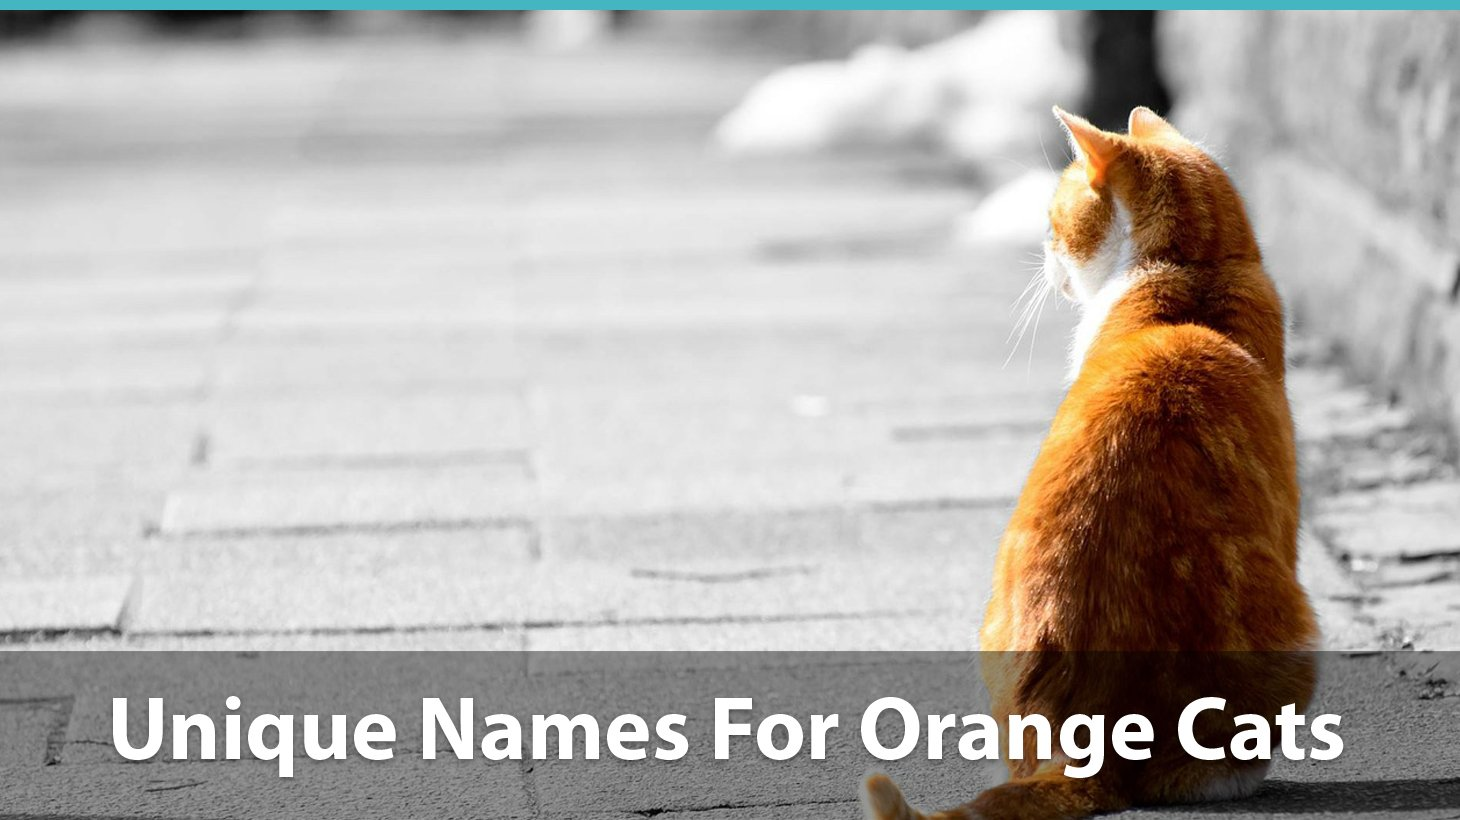 Top 200+ Names For Orange Cats: Funny, Traditional, Unique, And More!